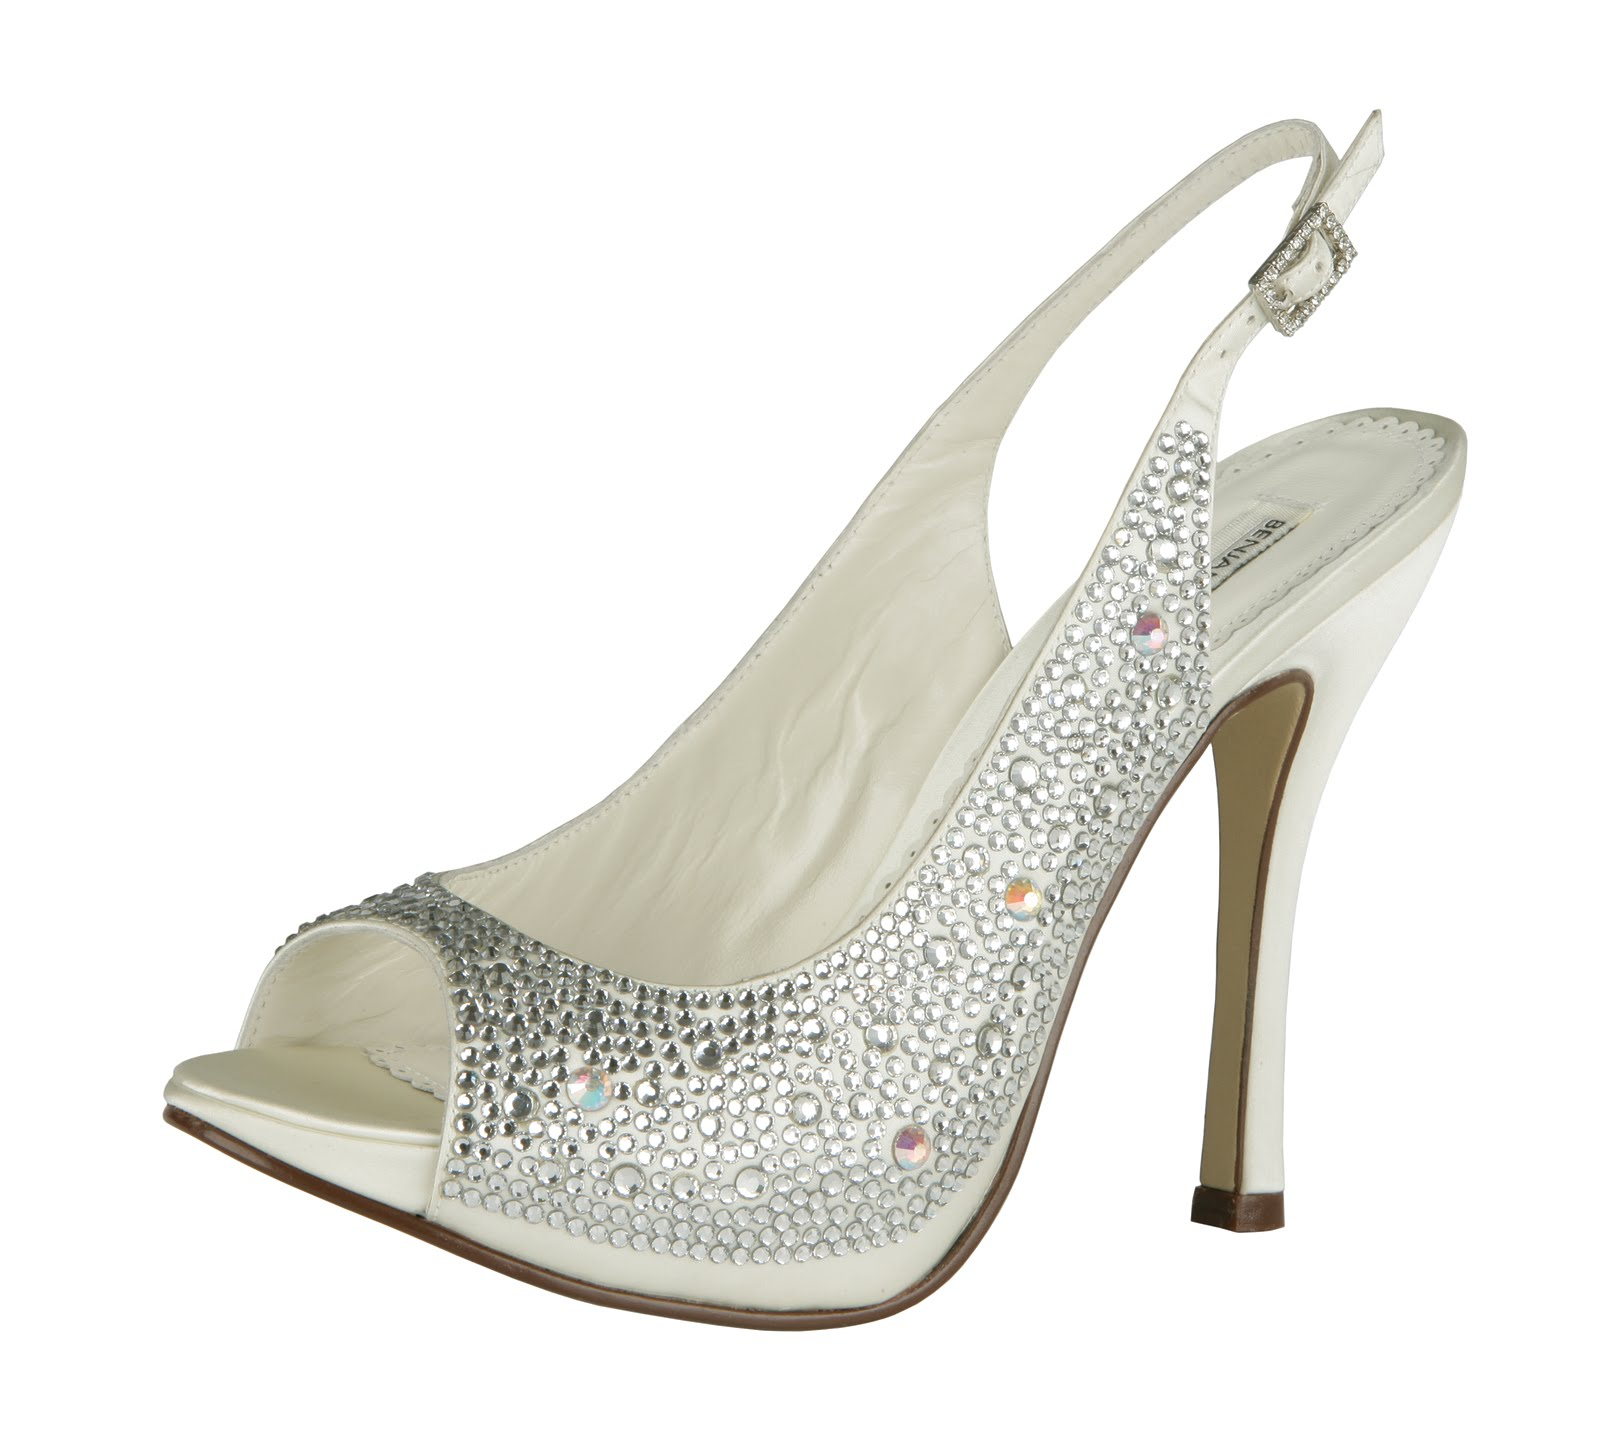 d7a8dfd802 2 Wedding Shoes. 2026582 weddbook. white christian louboutin ...